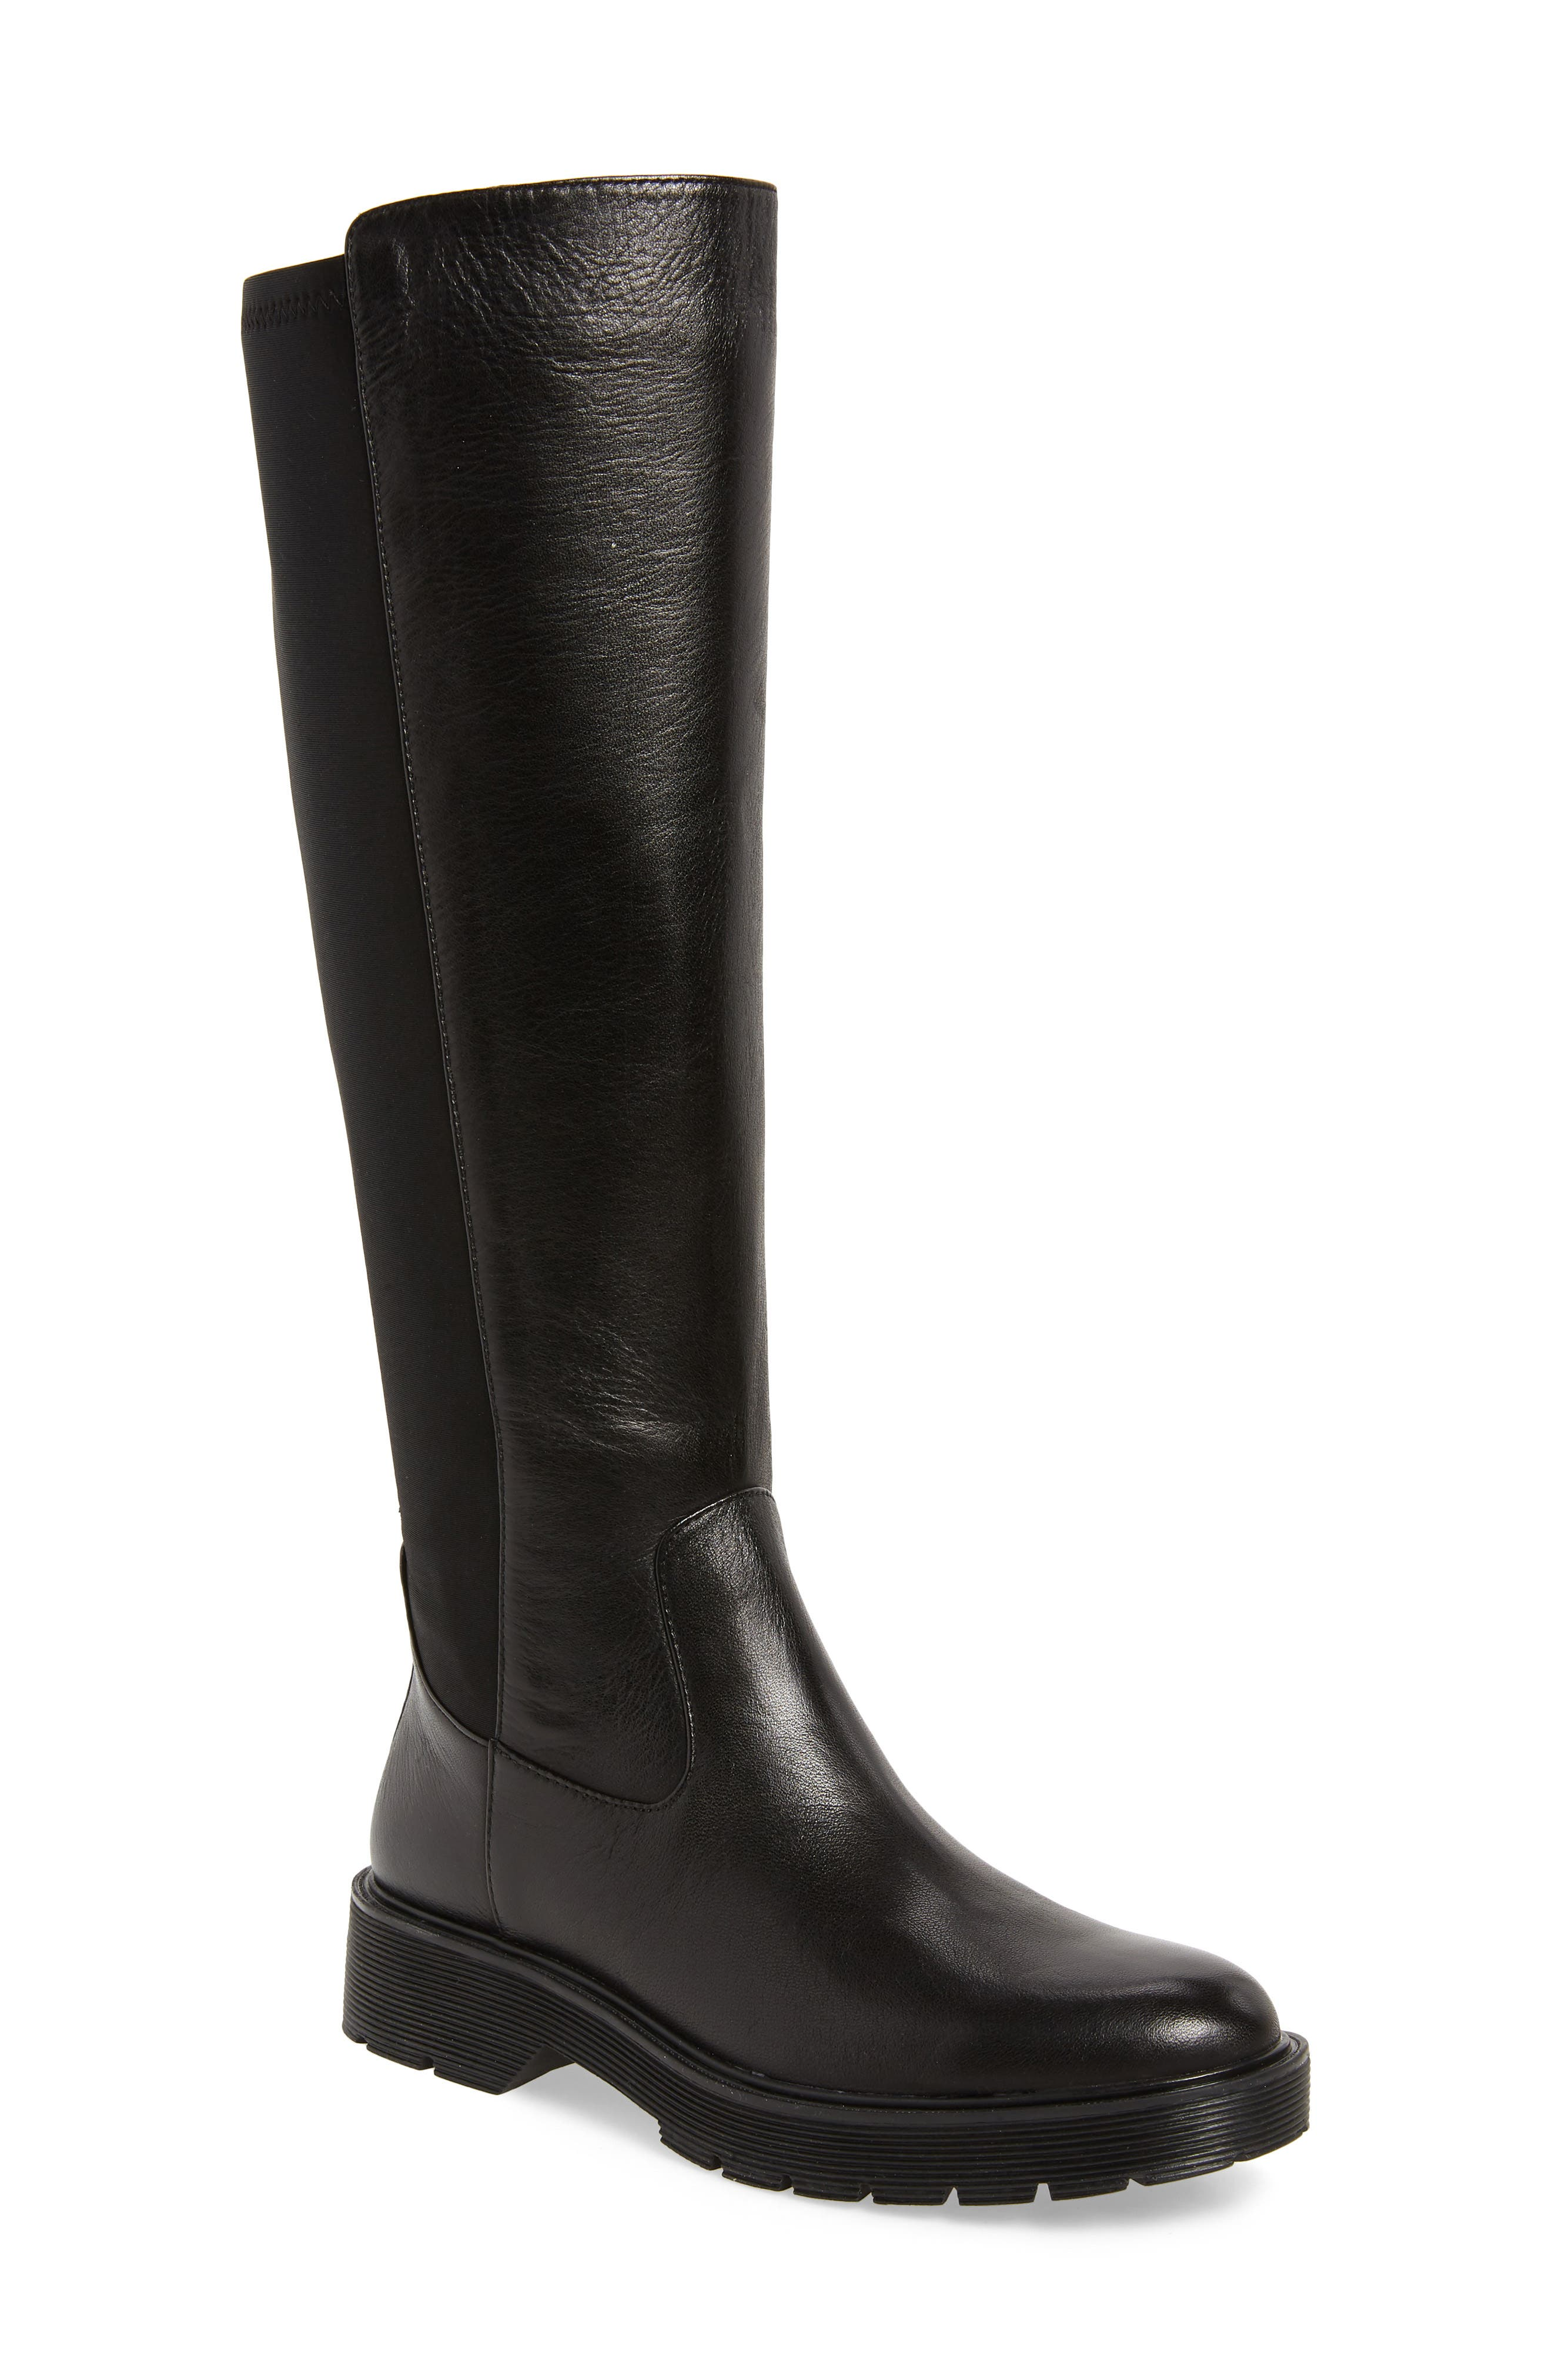 CALVIN KLEIN Themis Knee High Riding Boot, Main, color, BLACK LEATHER